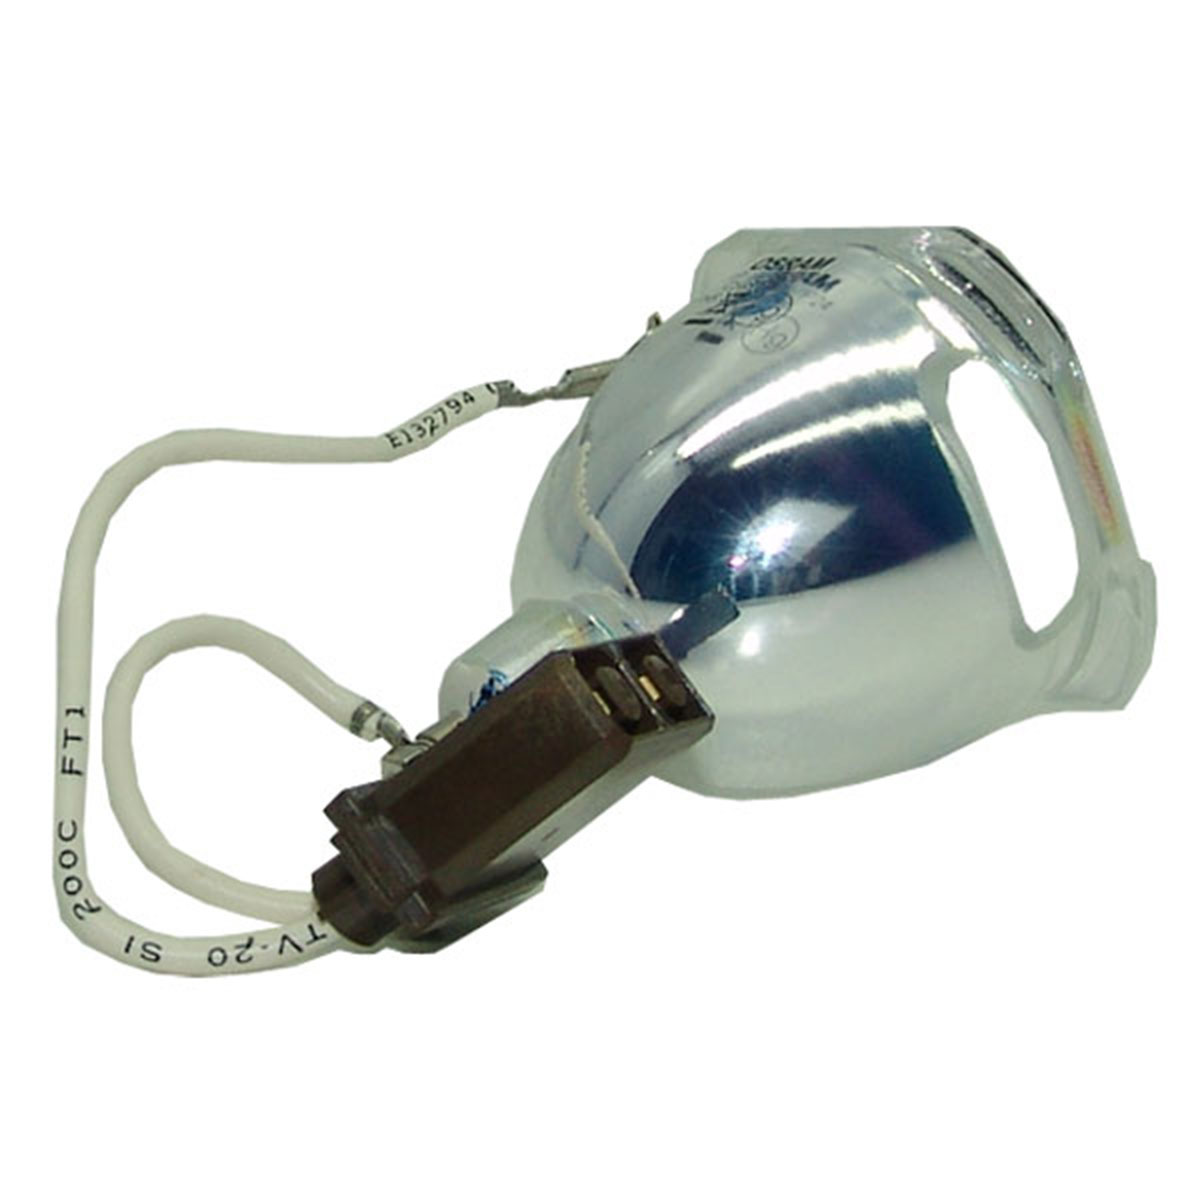 Lutema Platinum for Sharp XG-NV7XU Projector Lamp (Bulb Only) - image 2 of 5